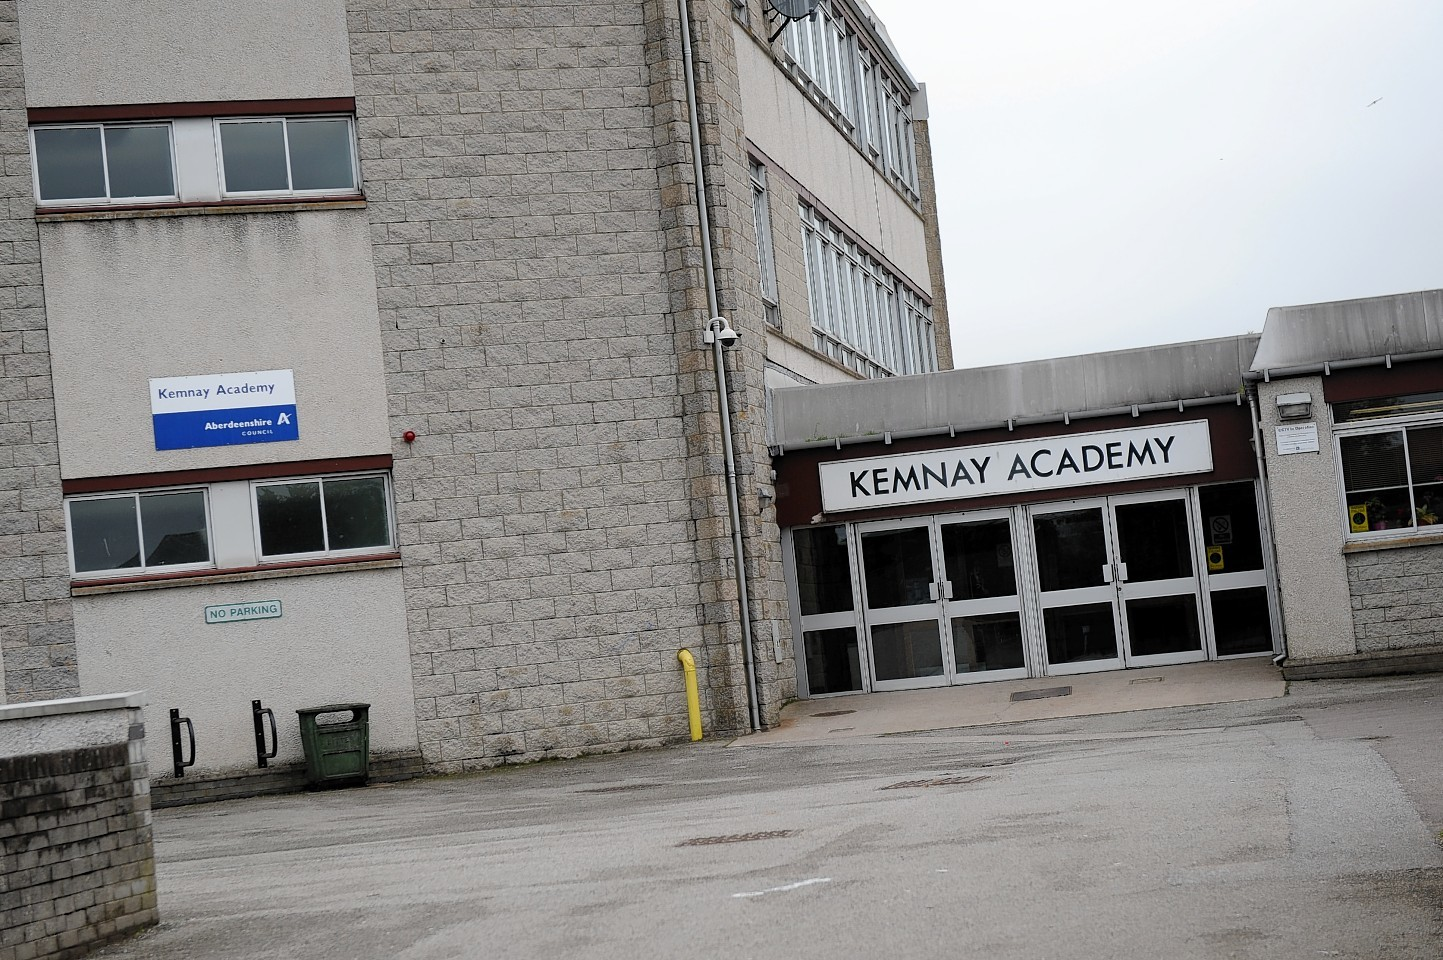 Concerns have been raised by locals that the development could increase pressures on the already over-capacity Kemnay Academy